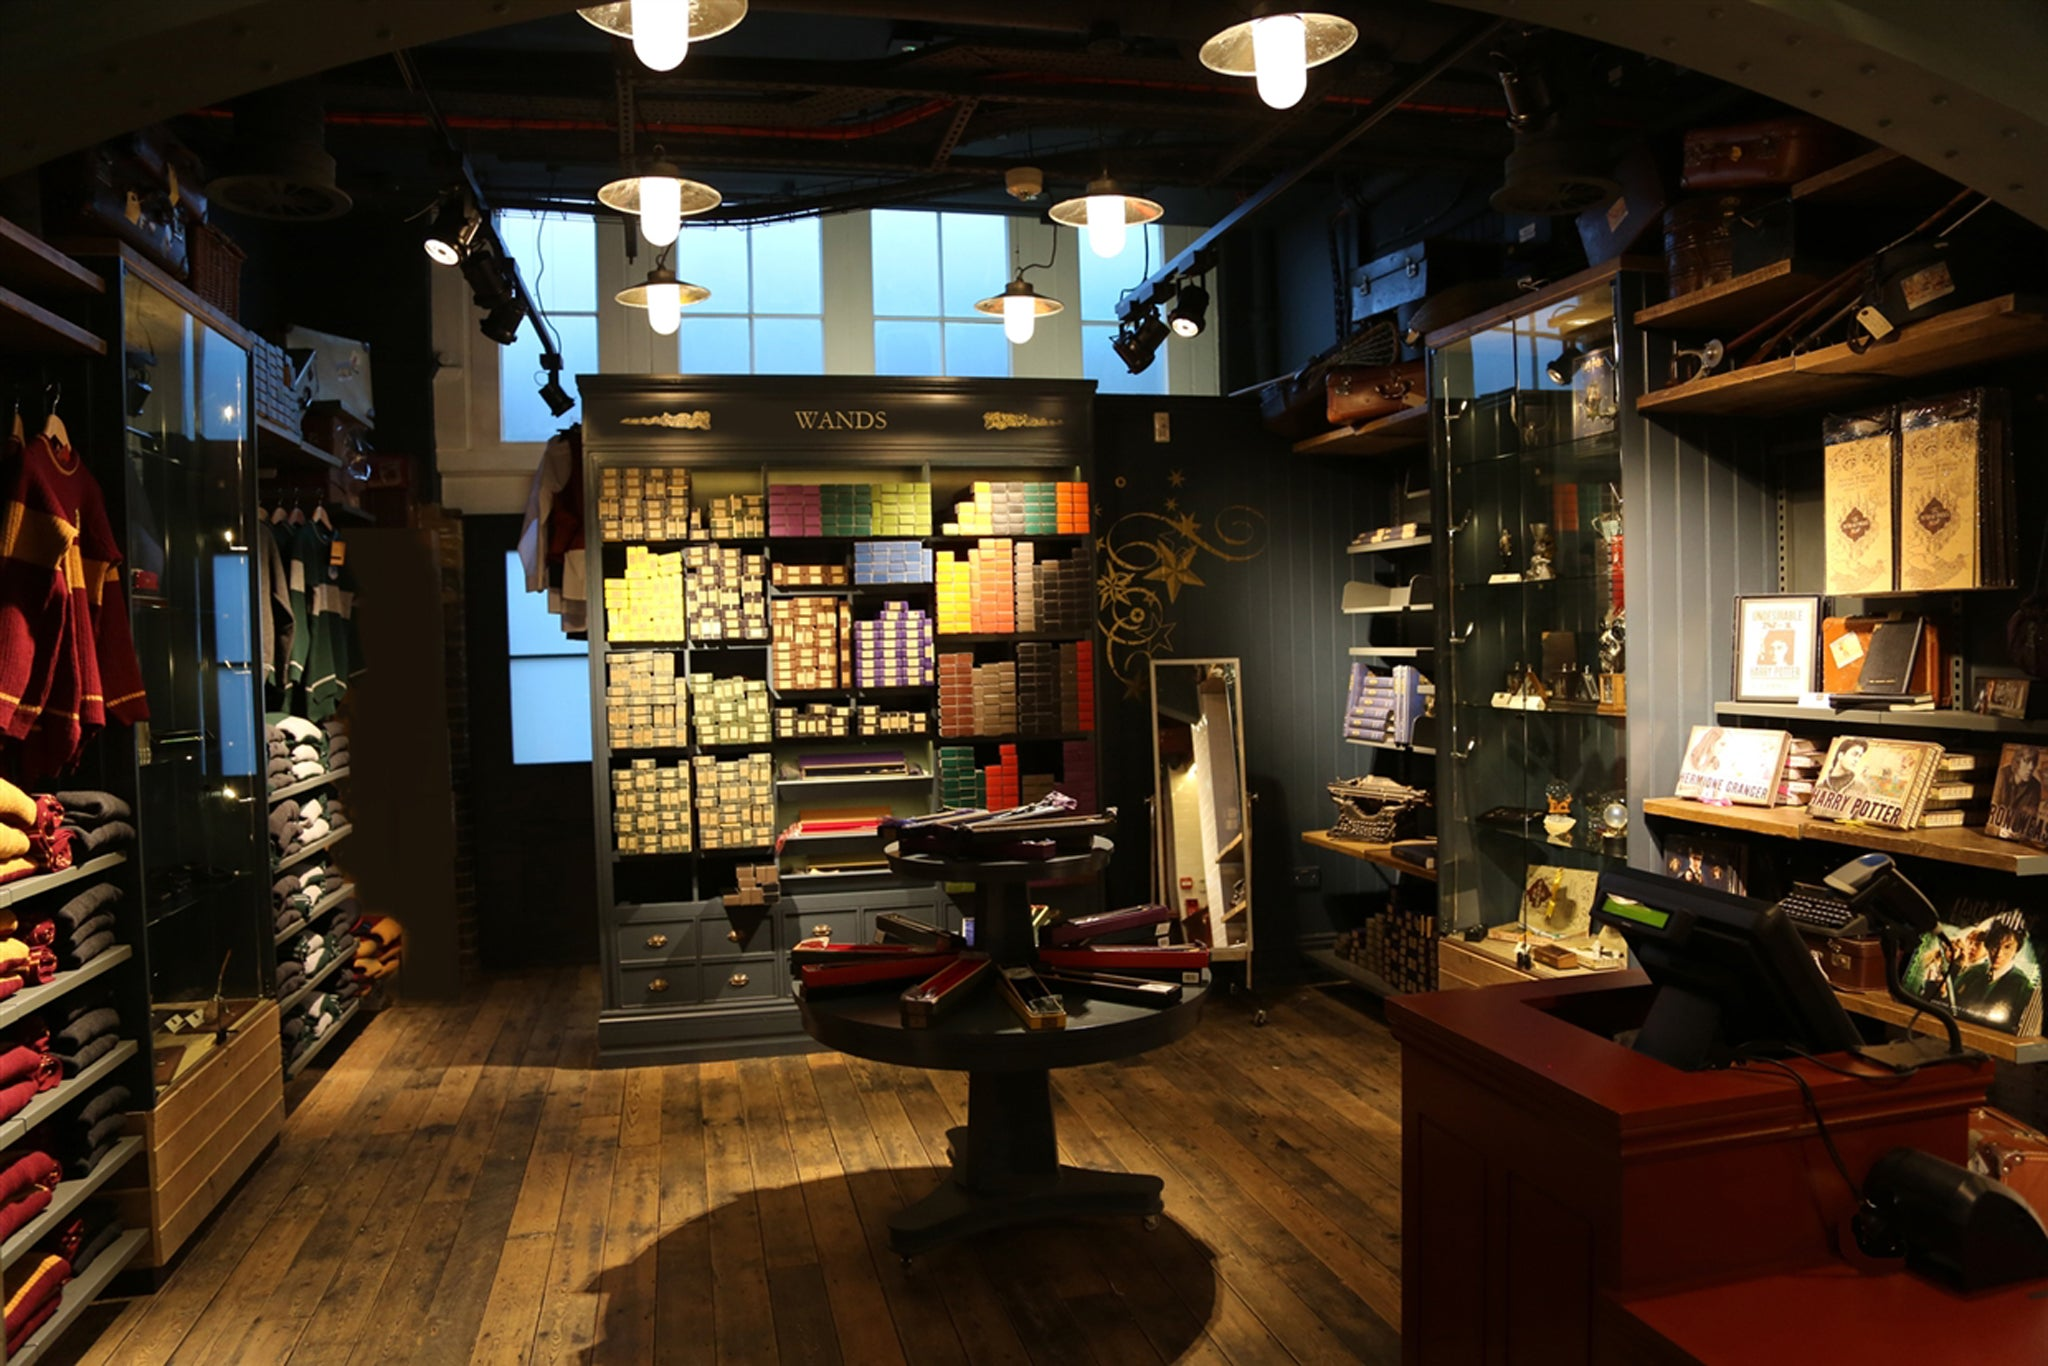 Harry Potter will have his first official flagship store in New York